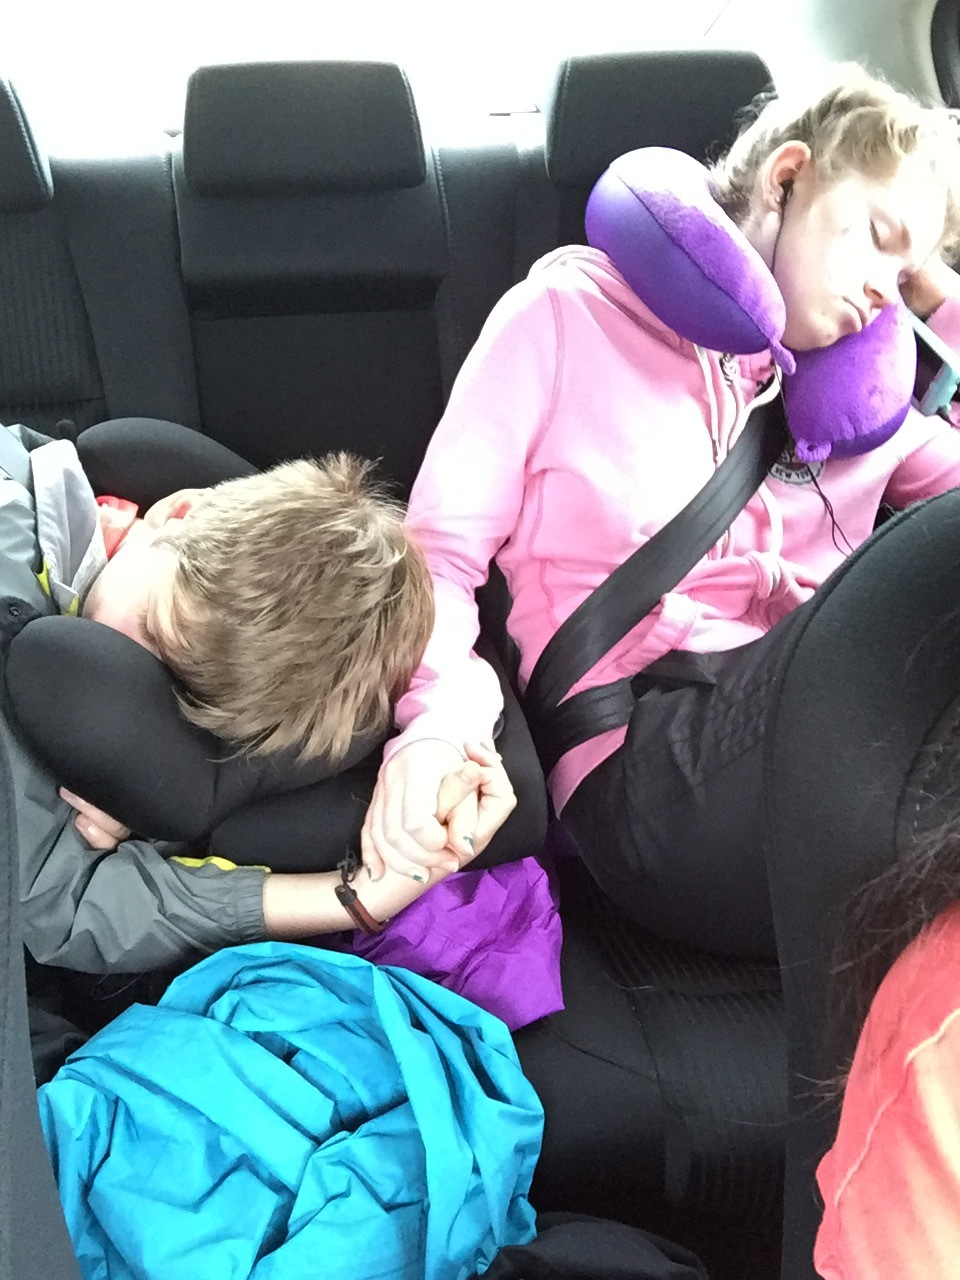 Guess the hot chocolate did not keep them up.